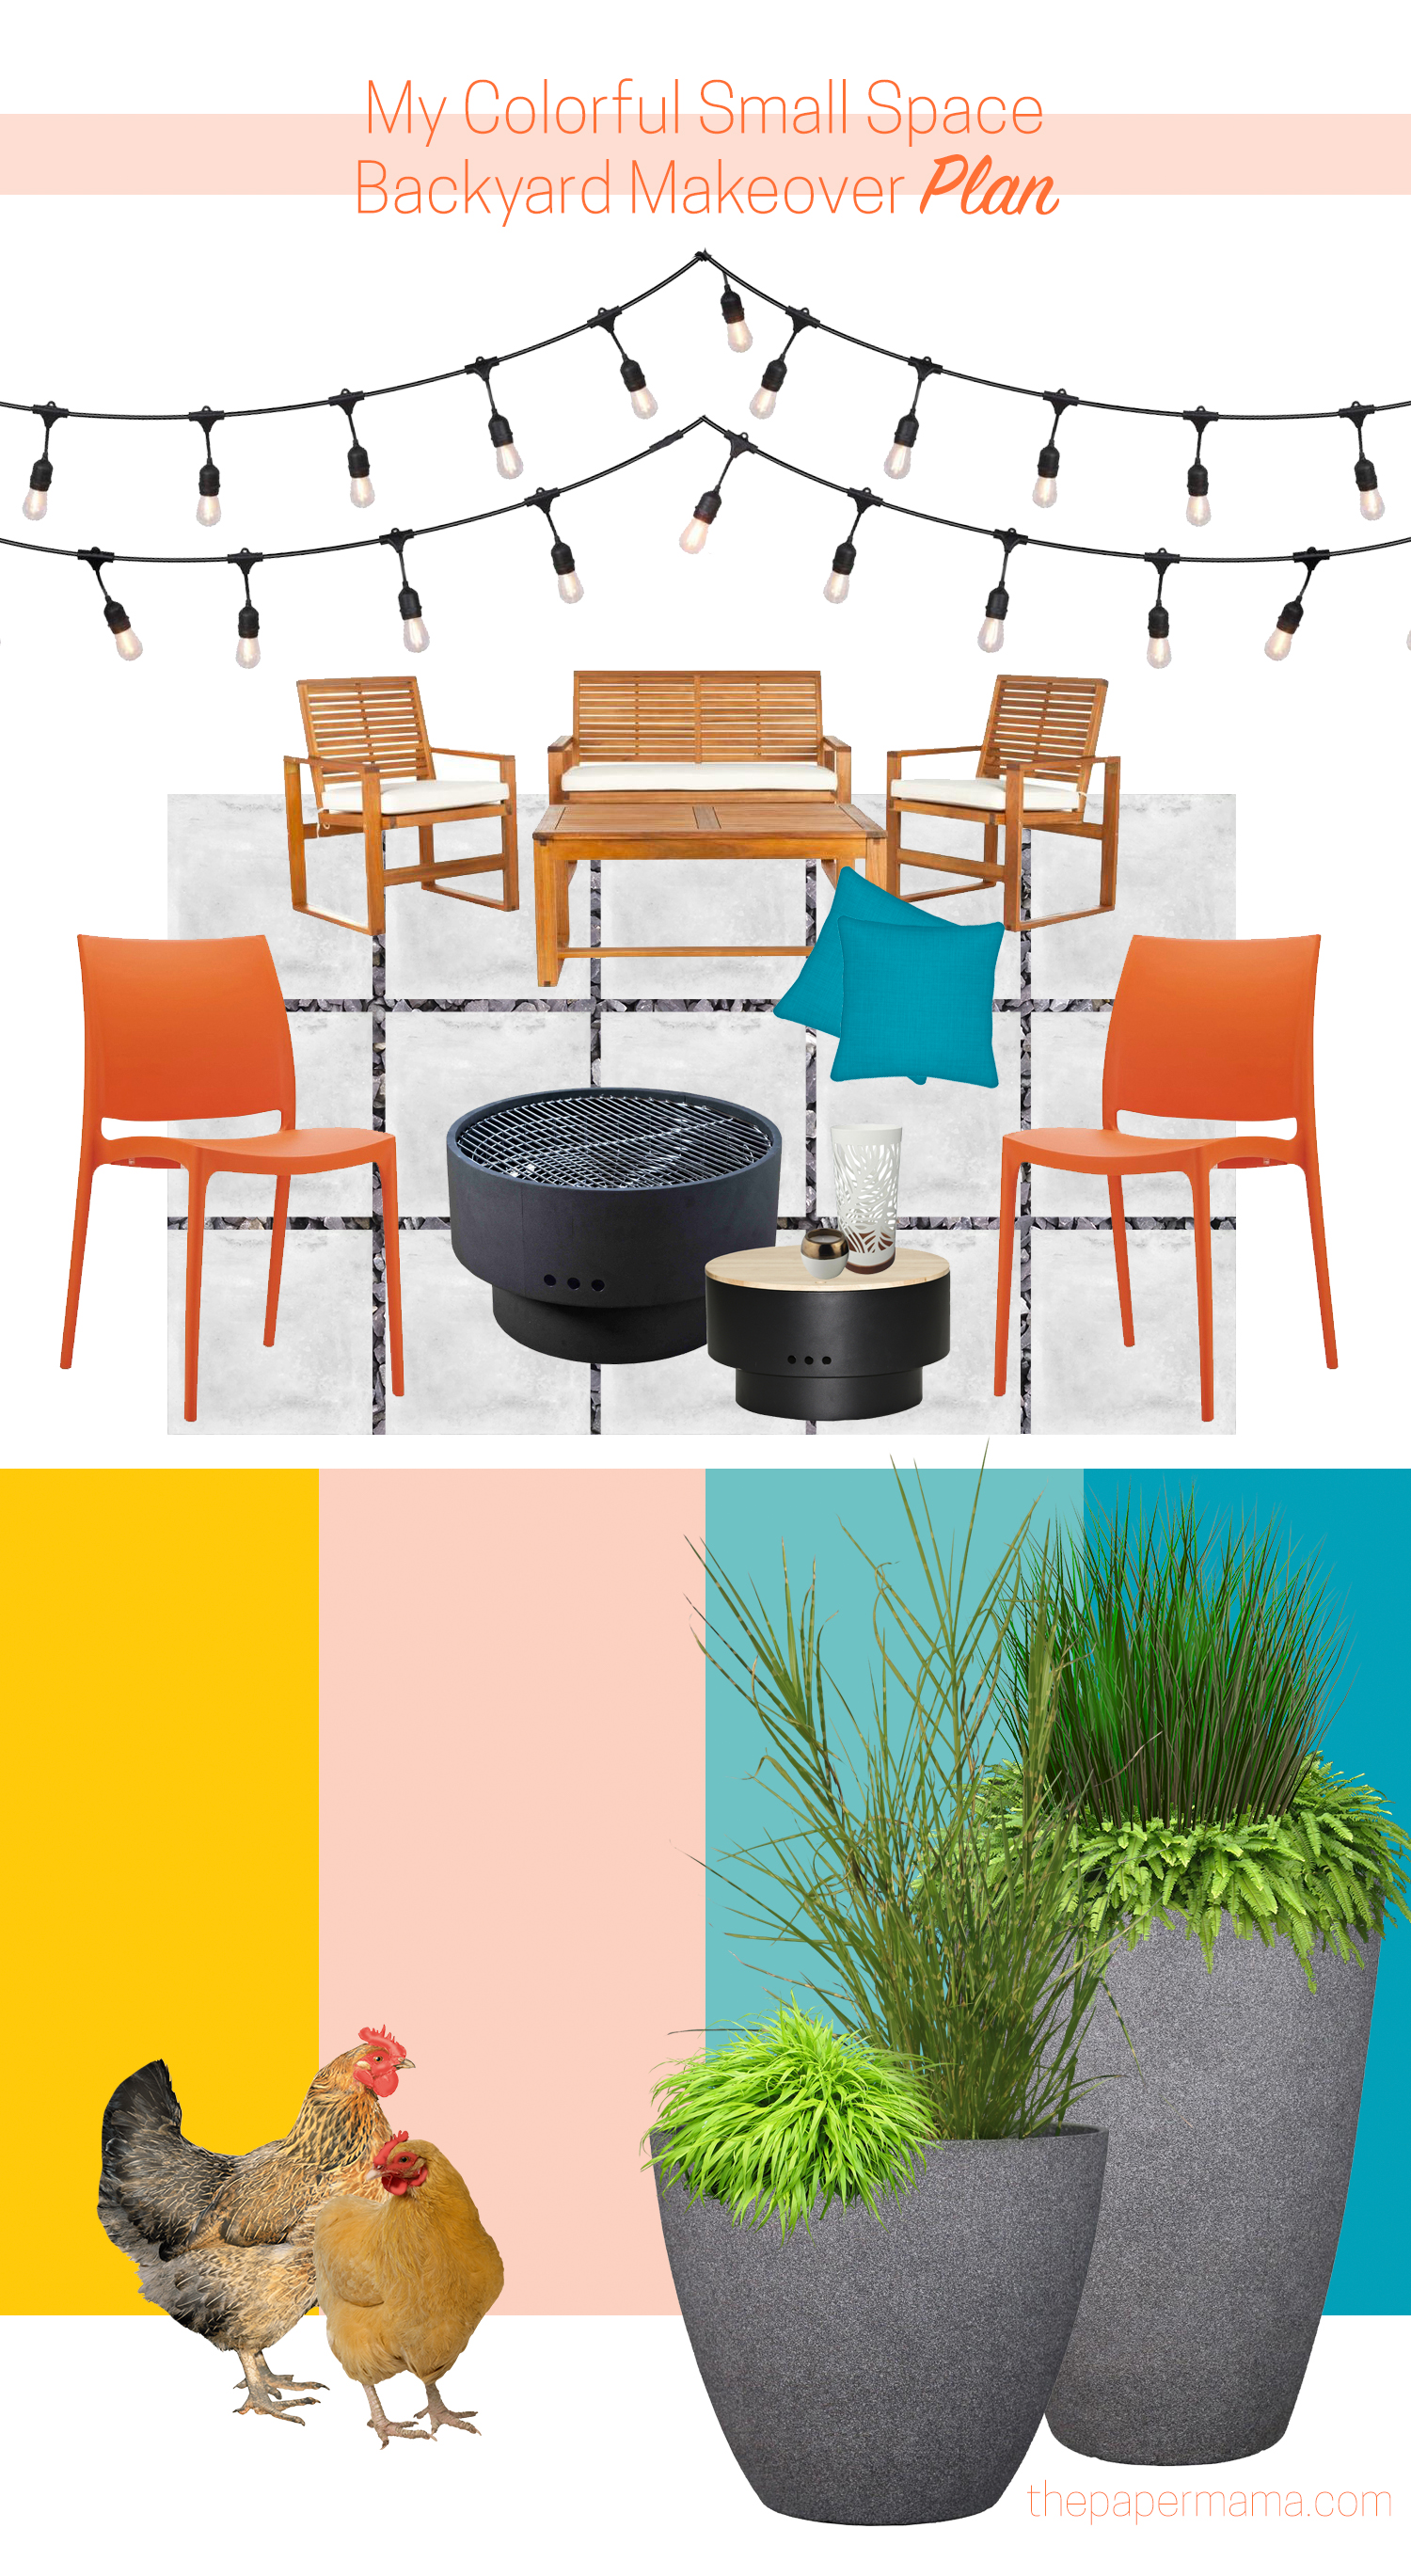 My Colorful Small Space Backyard Makeover Plan